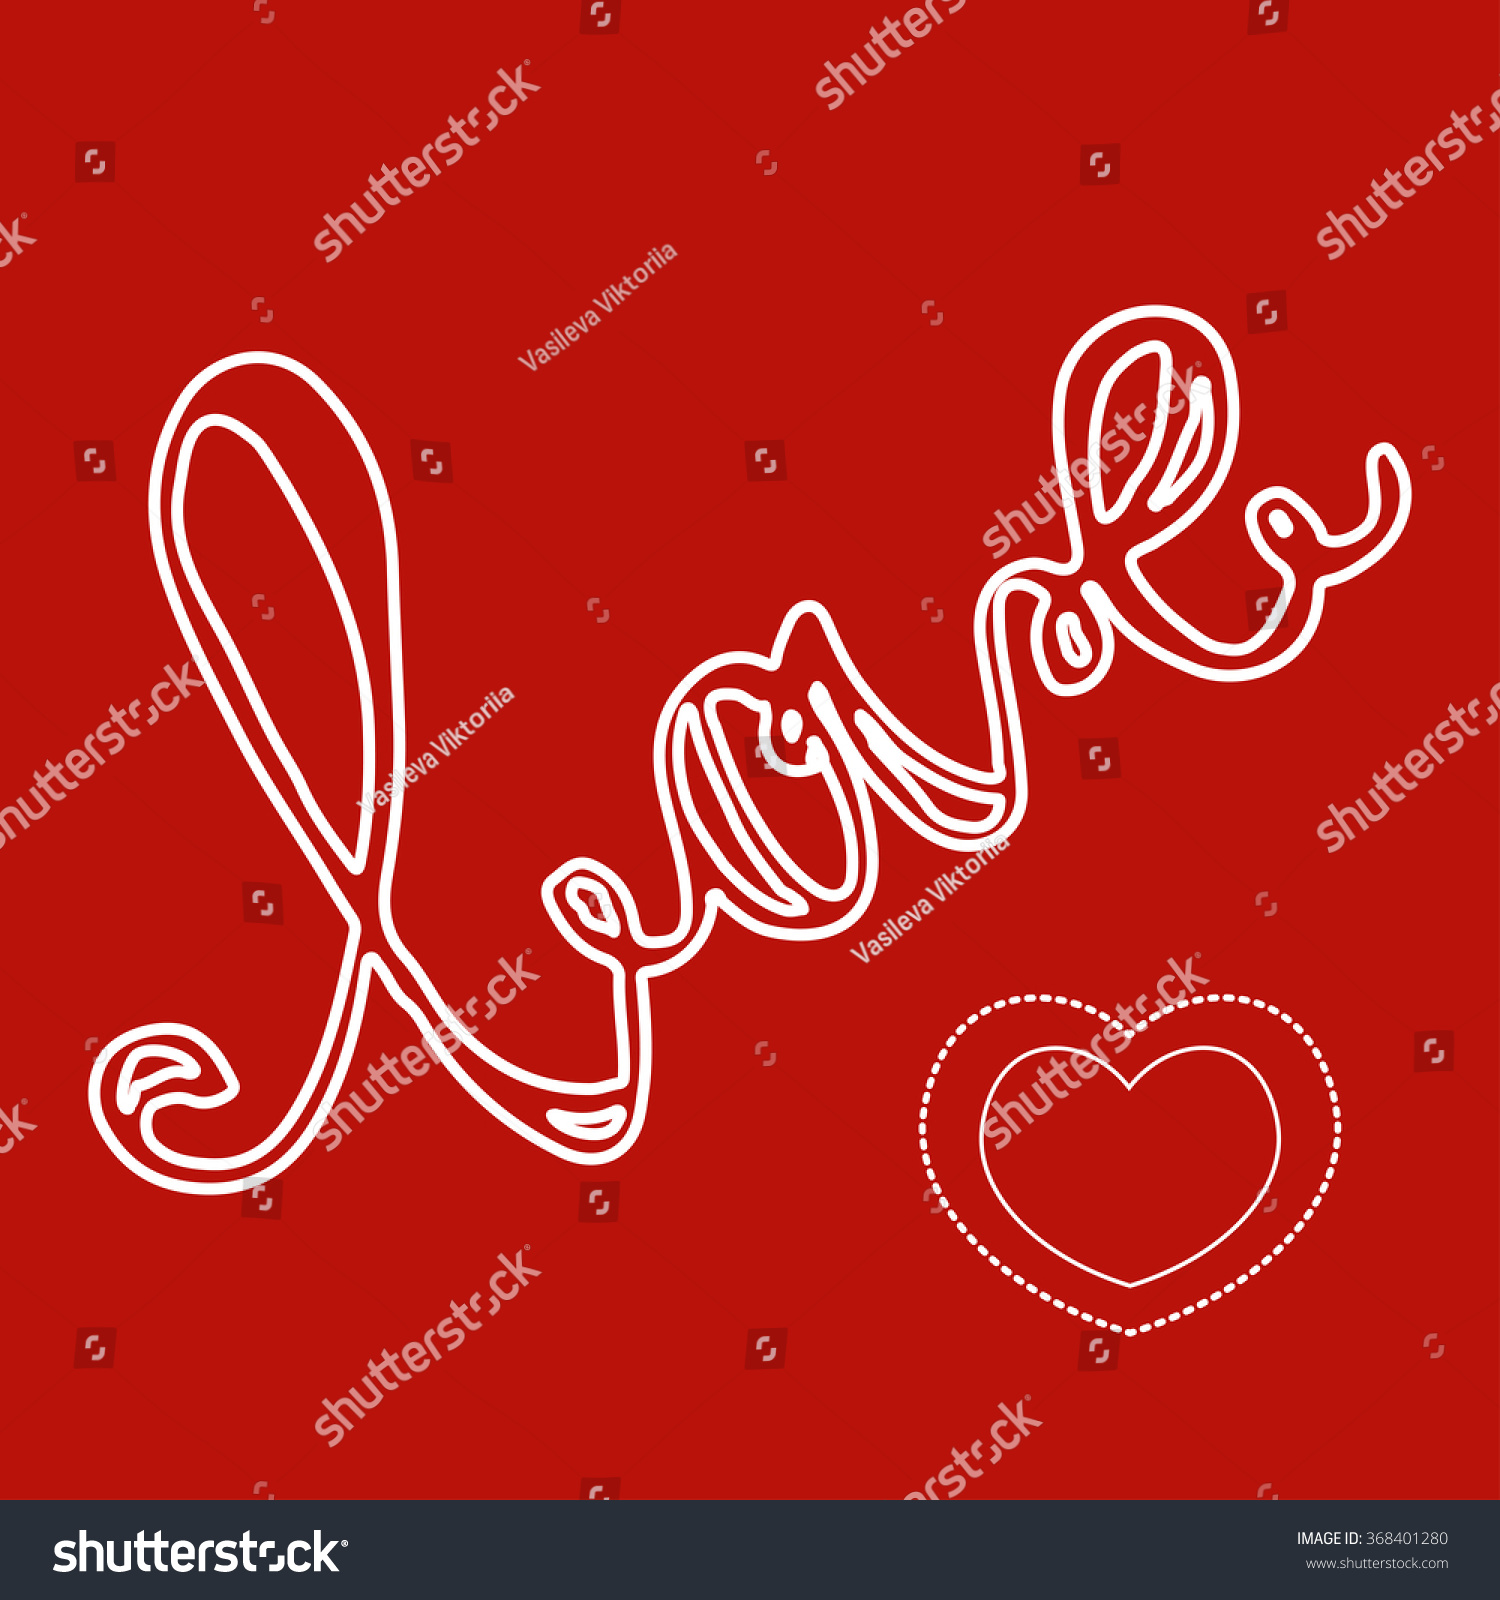 Love You Valentines Day Greeting Cards Vector Stock Vector Royalty